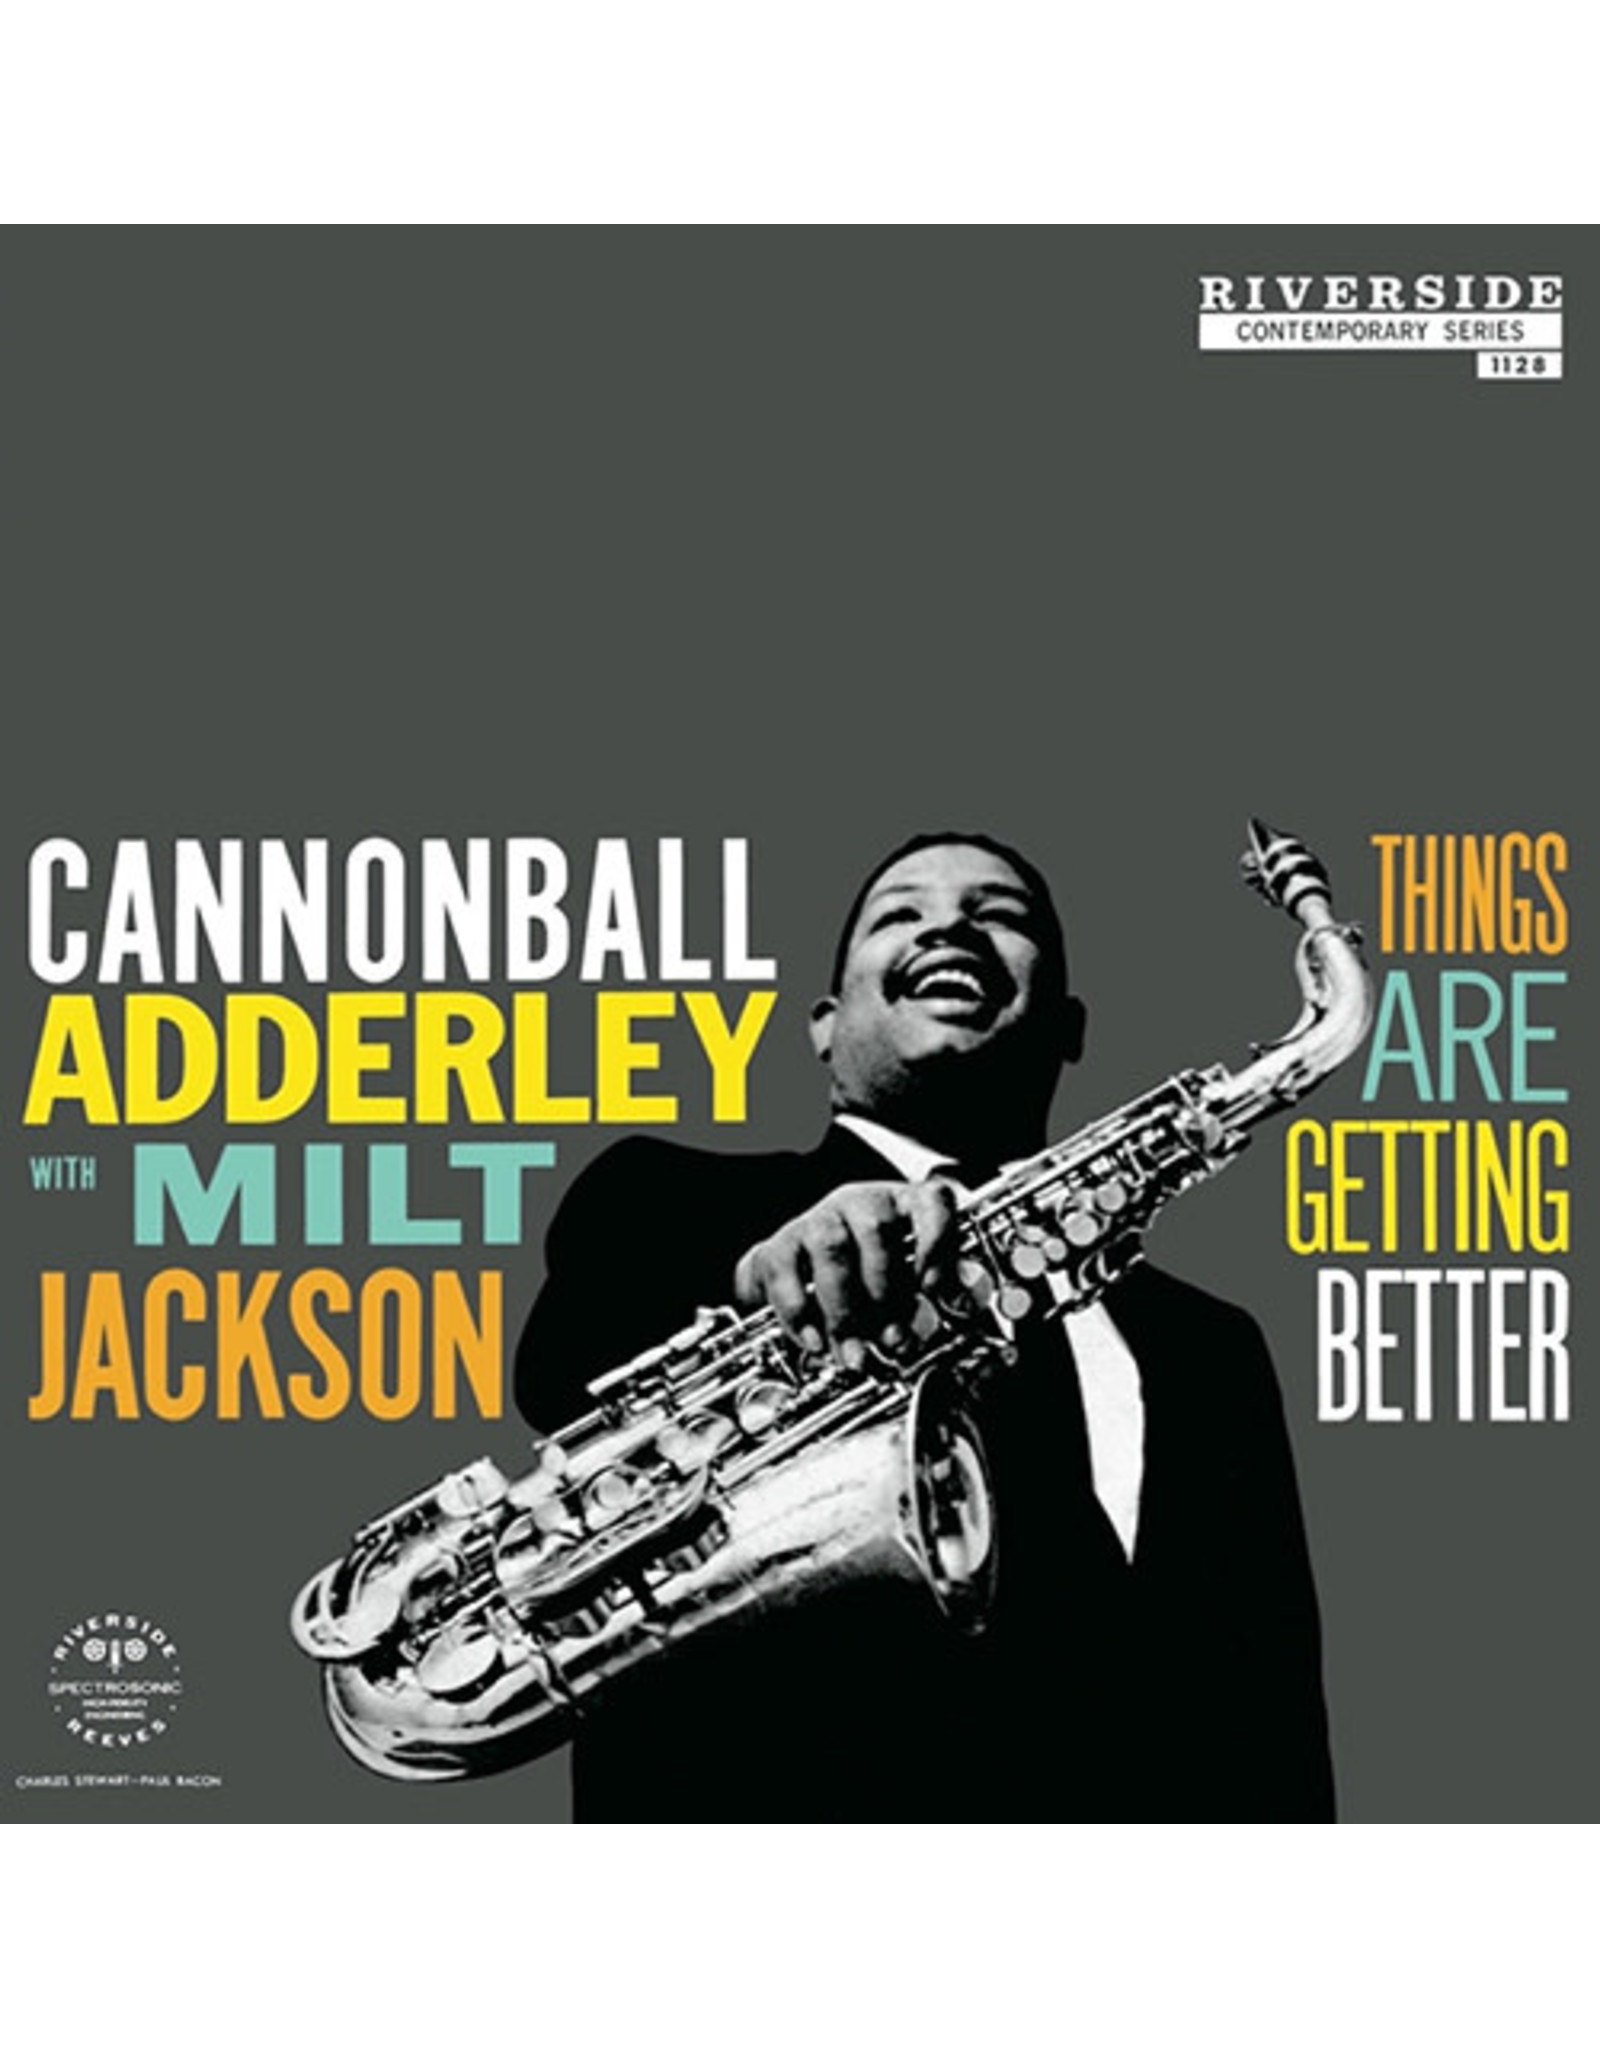 Cannonball Adderley & Milt Jackson - Things Are Getting Better